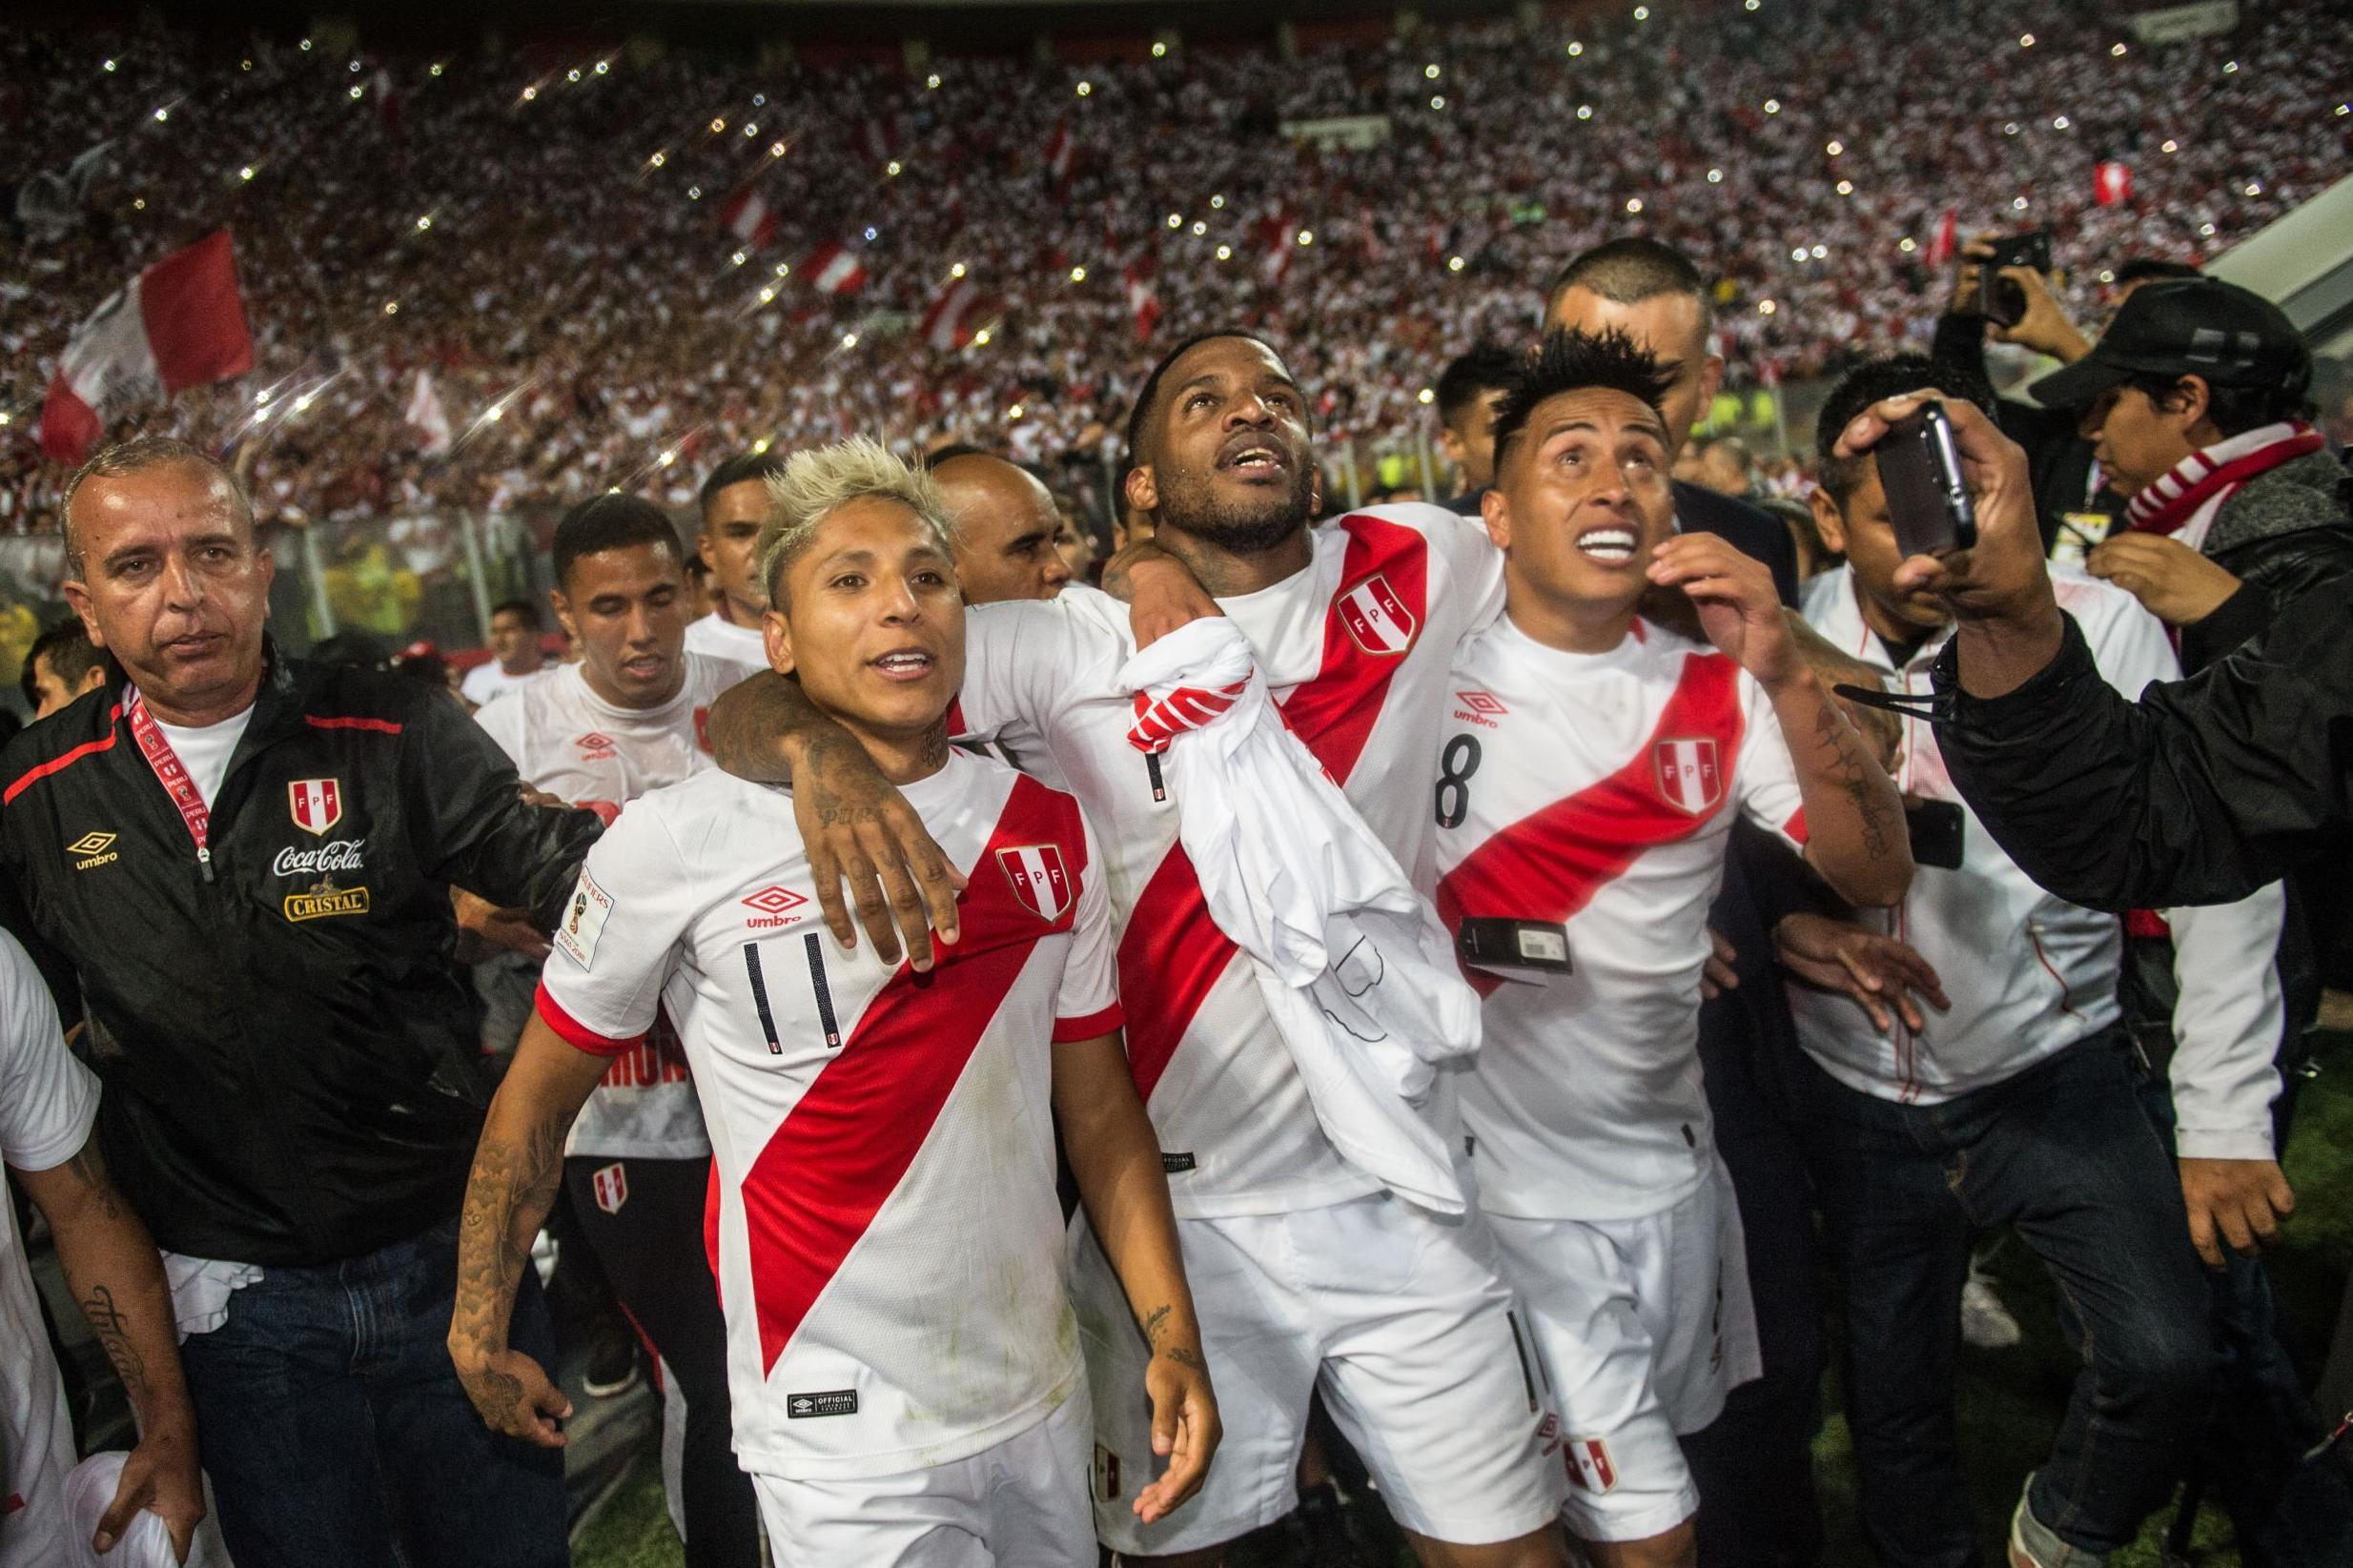 Peru World Cup goal celebrations 'set off earthquake alerts' in Lima